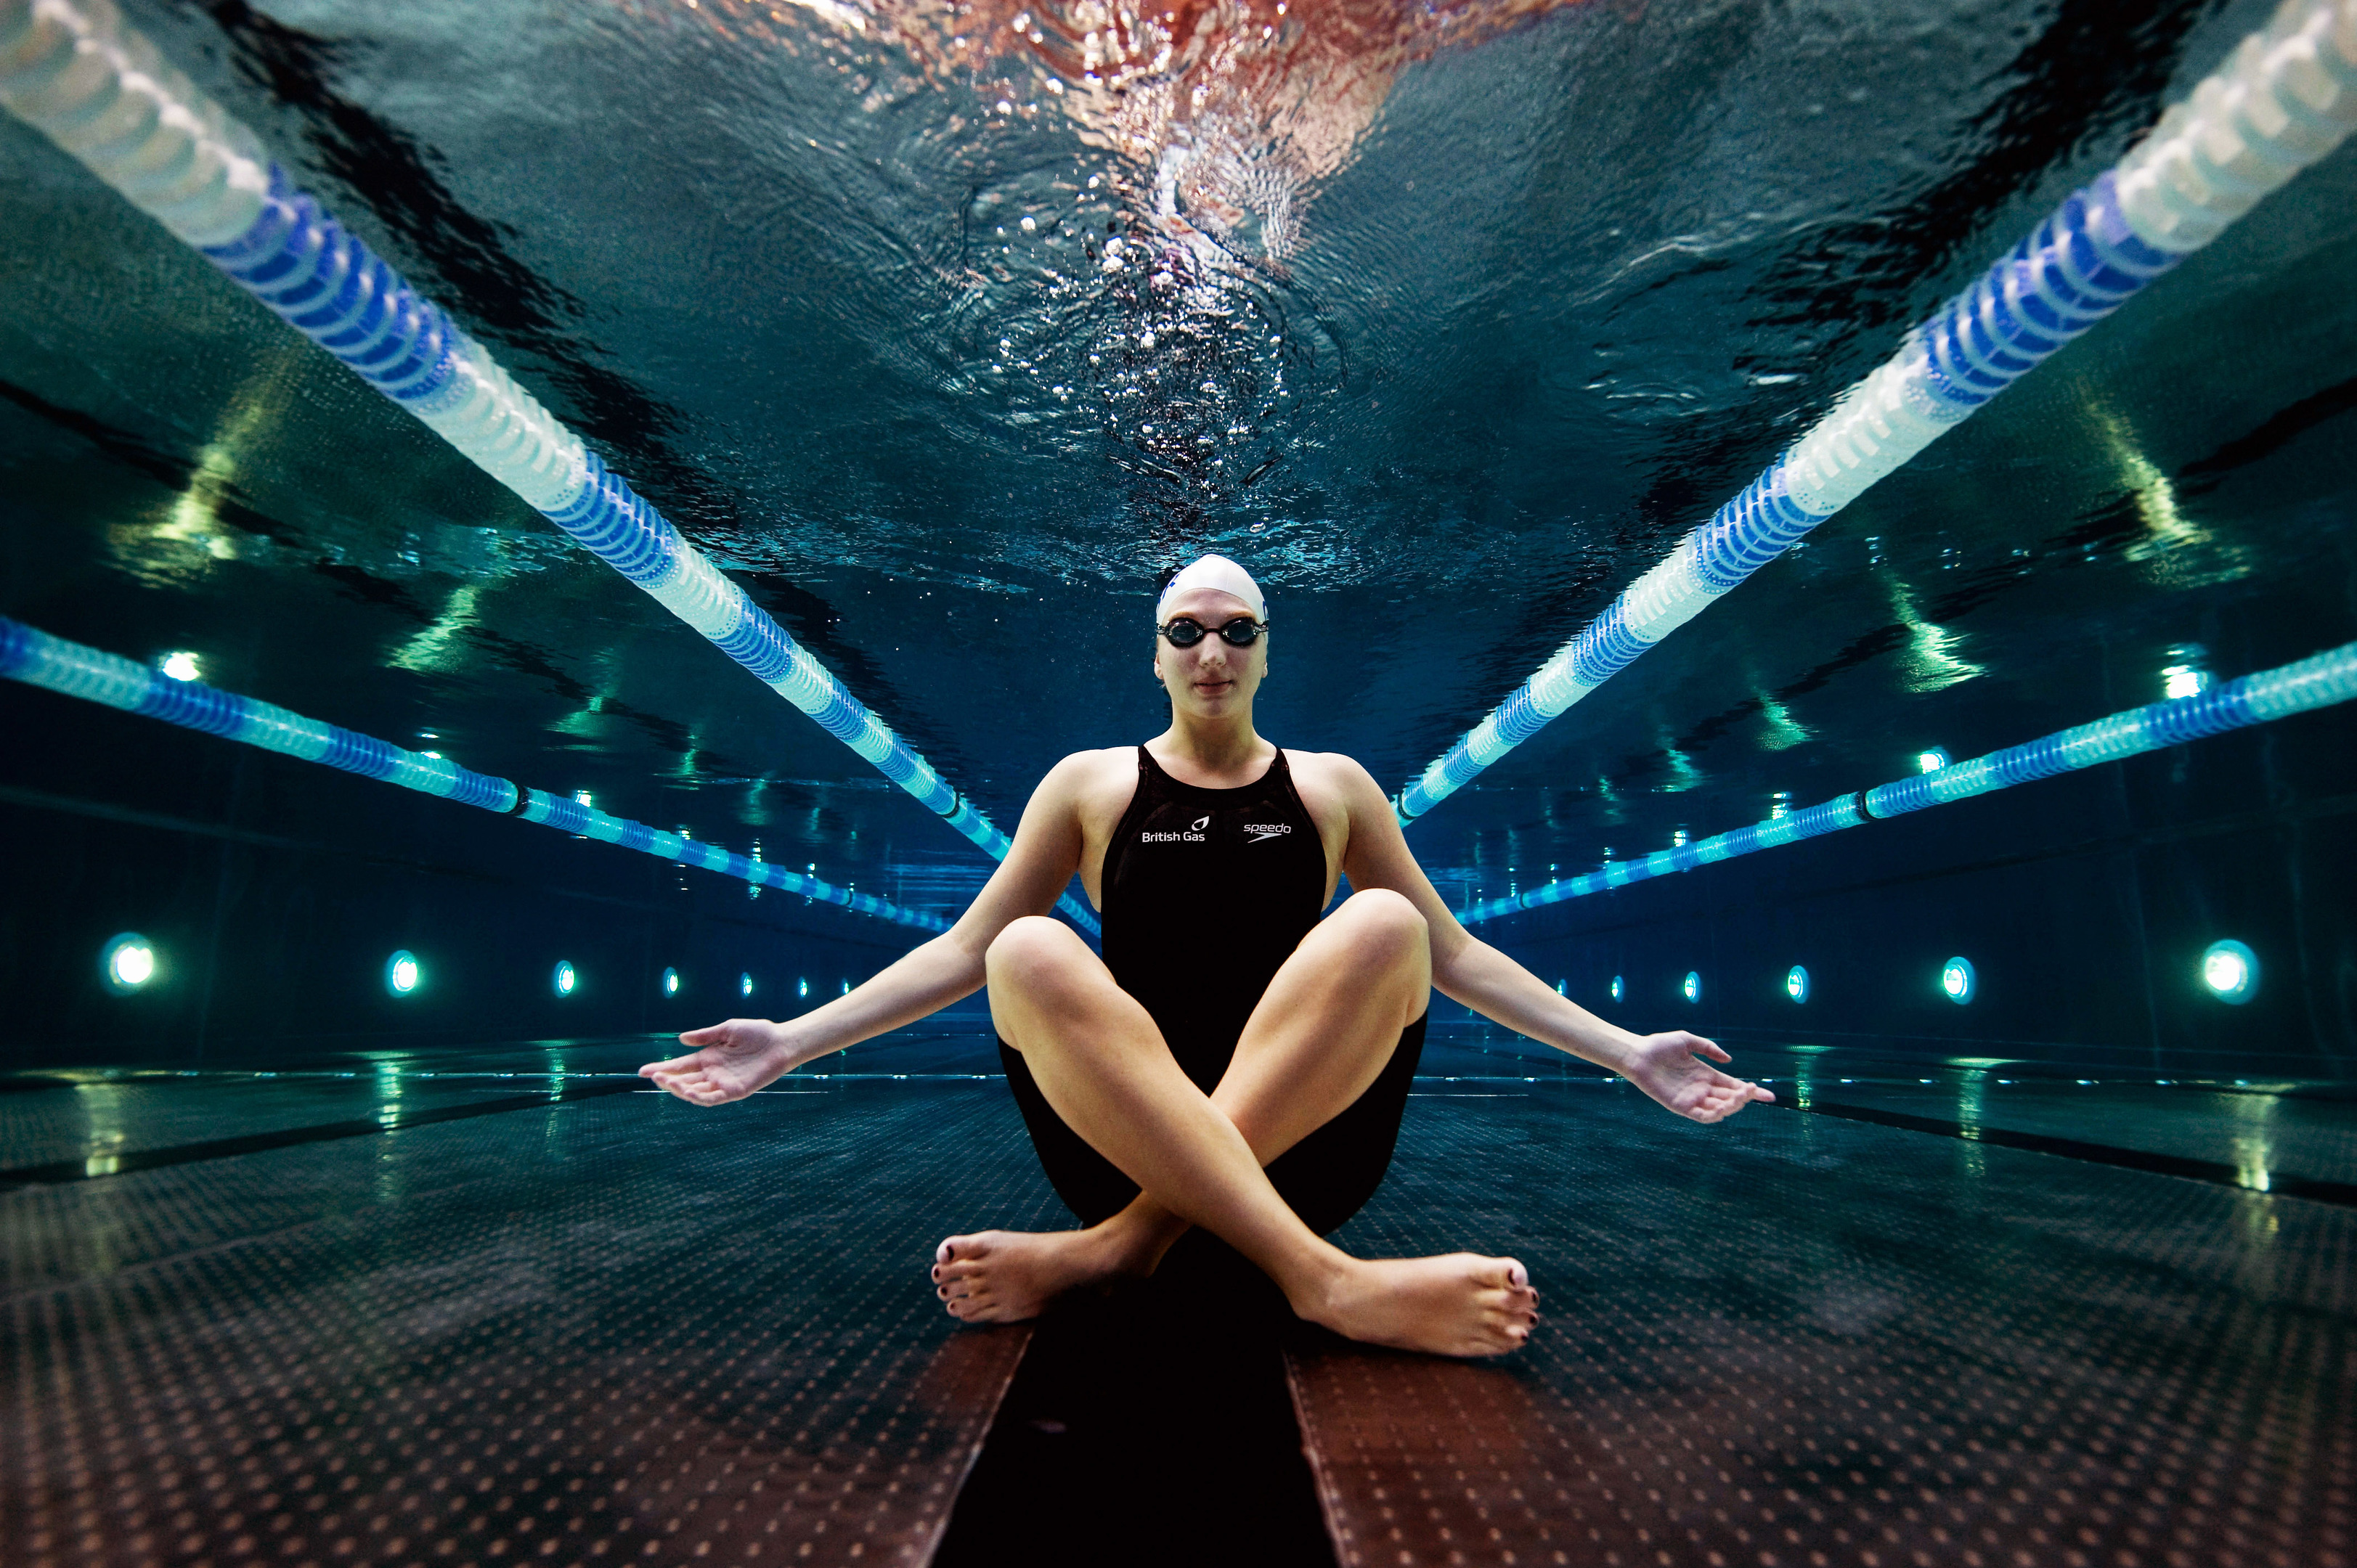 Rebecca Adlington poses underwater (Clive Rose/Getty Images for British Gas)